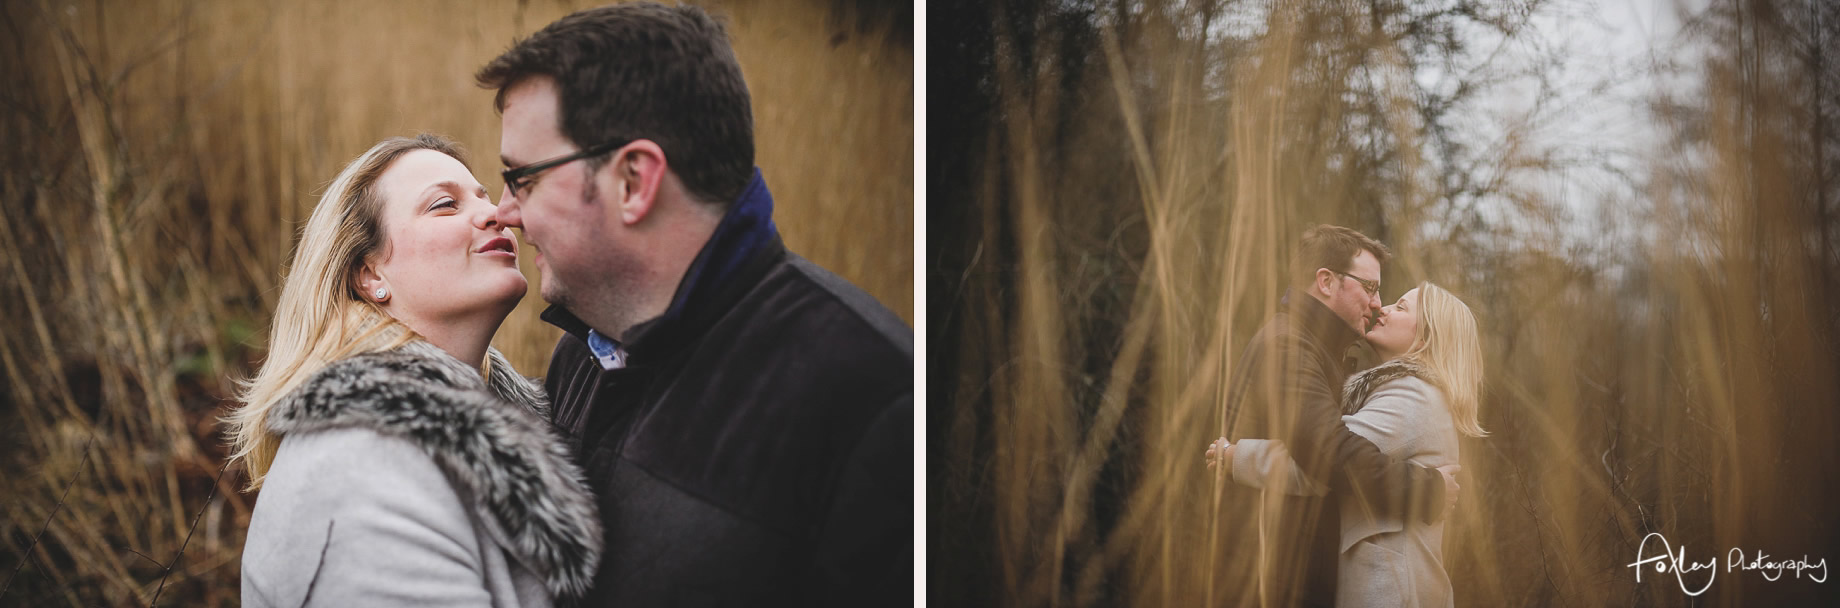 Rebecca and Paul's Pre-Wedding Shoot at Wycoller Country Park 016